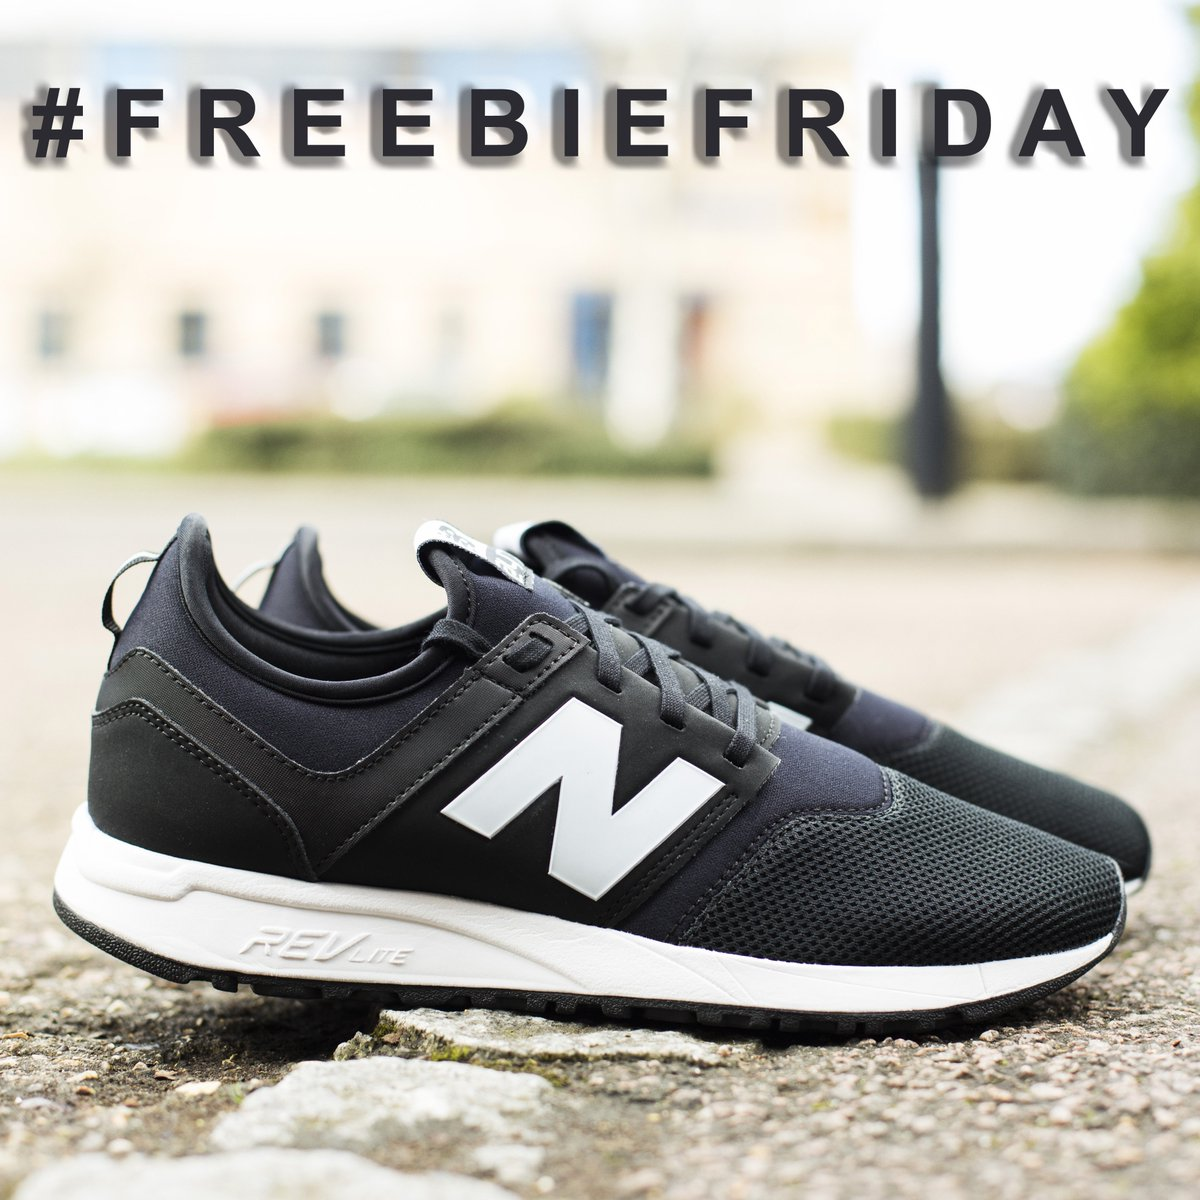 be1d0ea0b #FreebieFriday FOLLOW & RT for a chance to win this pair of New Balance 247  trainers http://ow.ly/qNUa309KbZu .